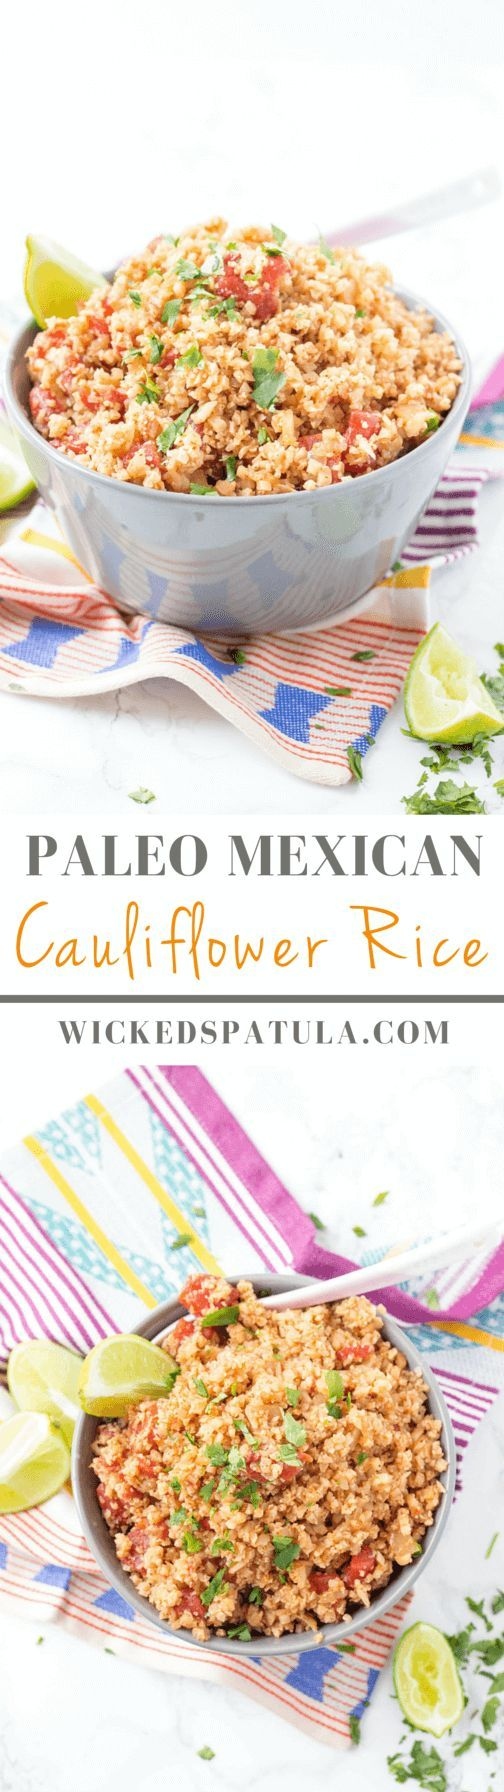 Mexican Cauliflower Rice - This quick and easy paleo side dish is bursting with Mexican flavors for a fraction of the carbs of normal rice